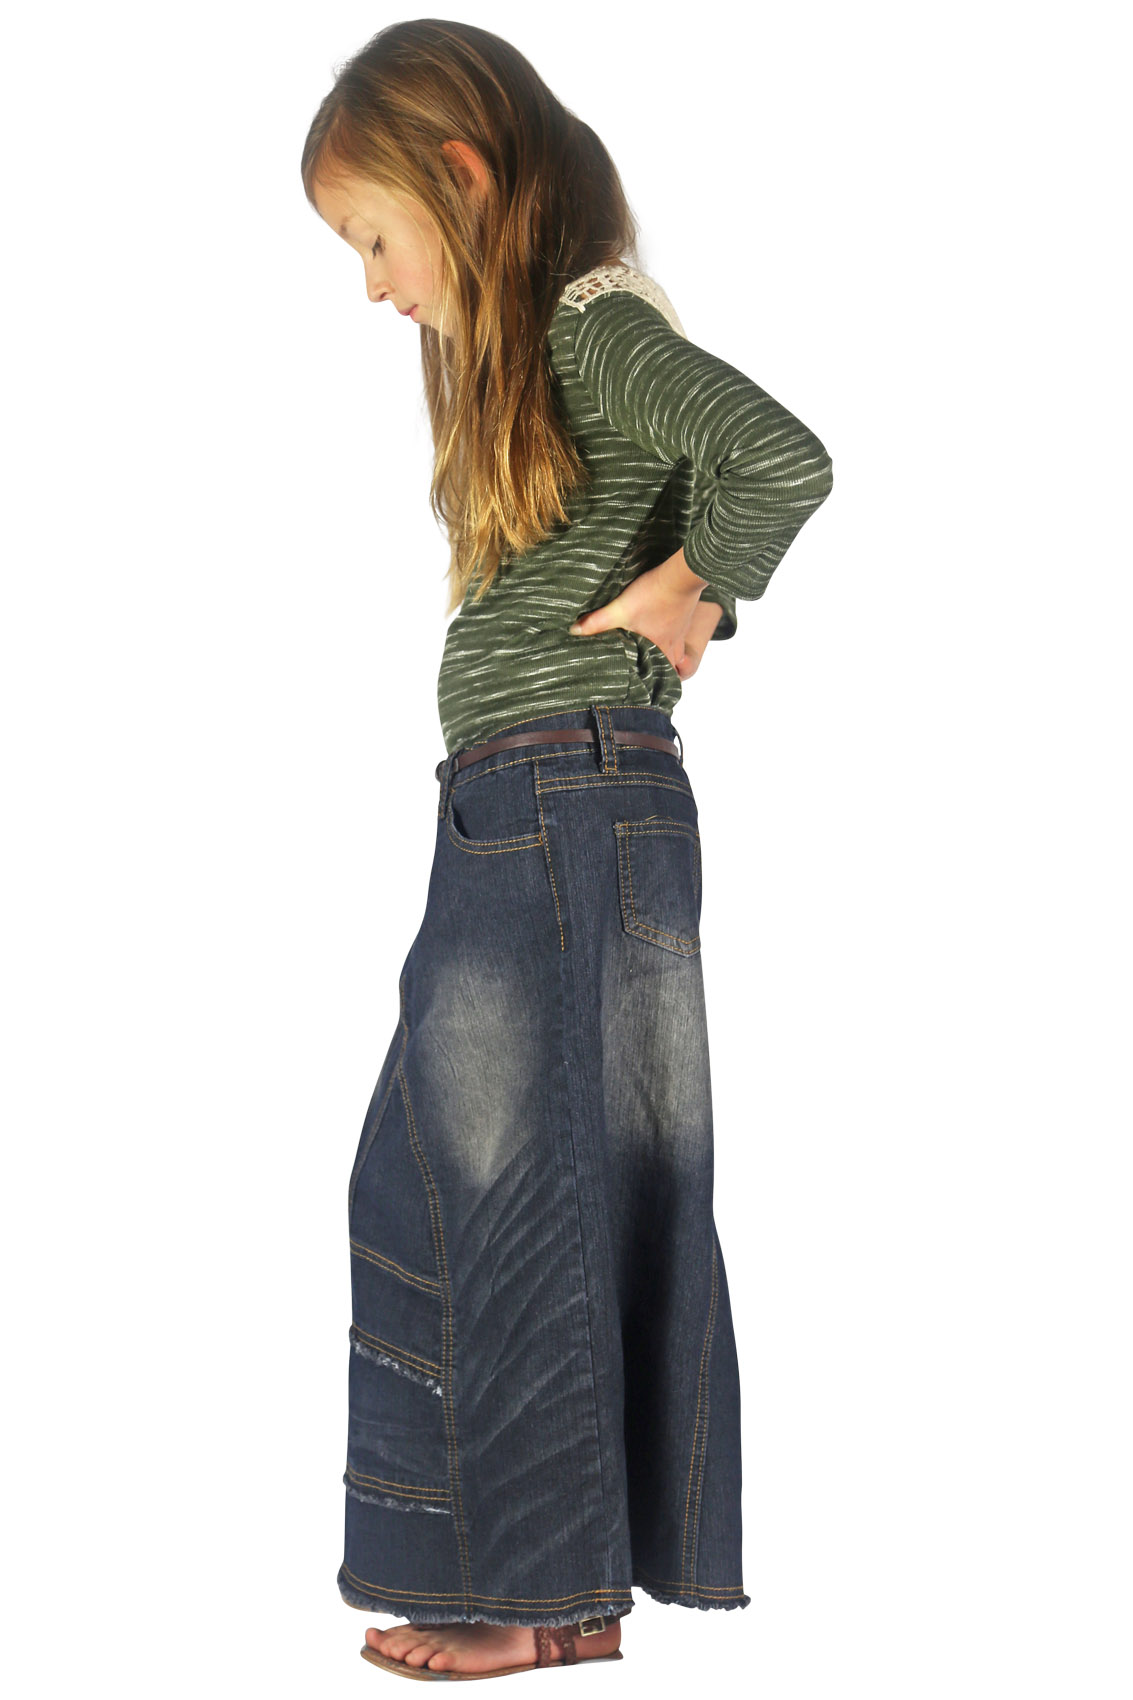 Pant leg styles in girls' jeans. Pant legs have become like an artist's canvas, and girls' jeans offer a variety of styles, including distressed, embroidered, studded, and more. It's easy to get excited about the decorative aspects of jeans, but comfort is important, too.